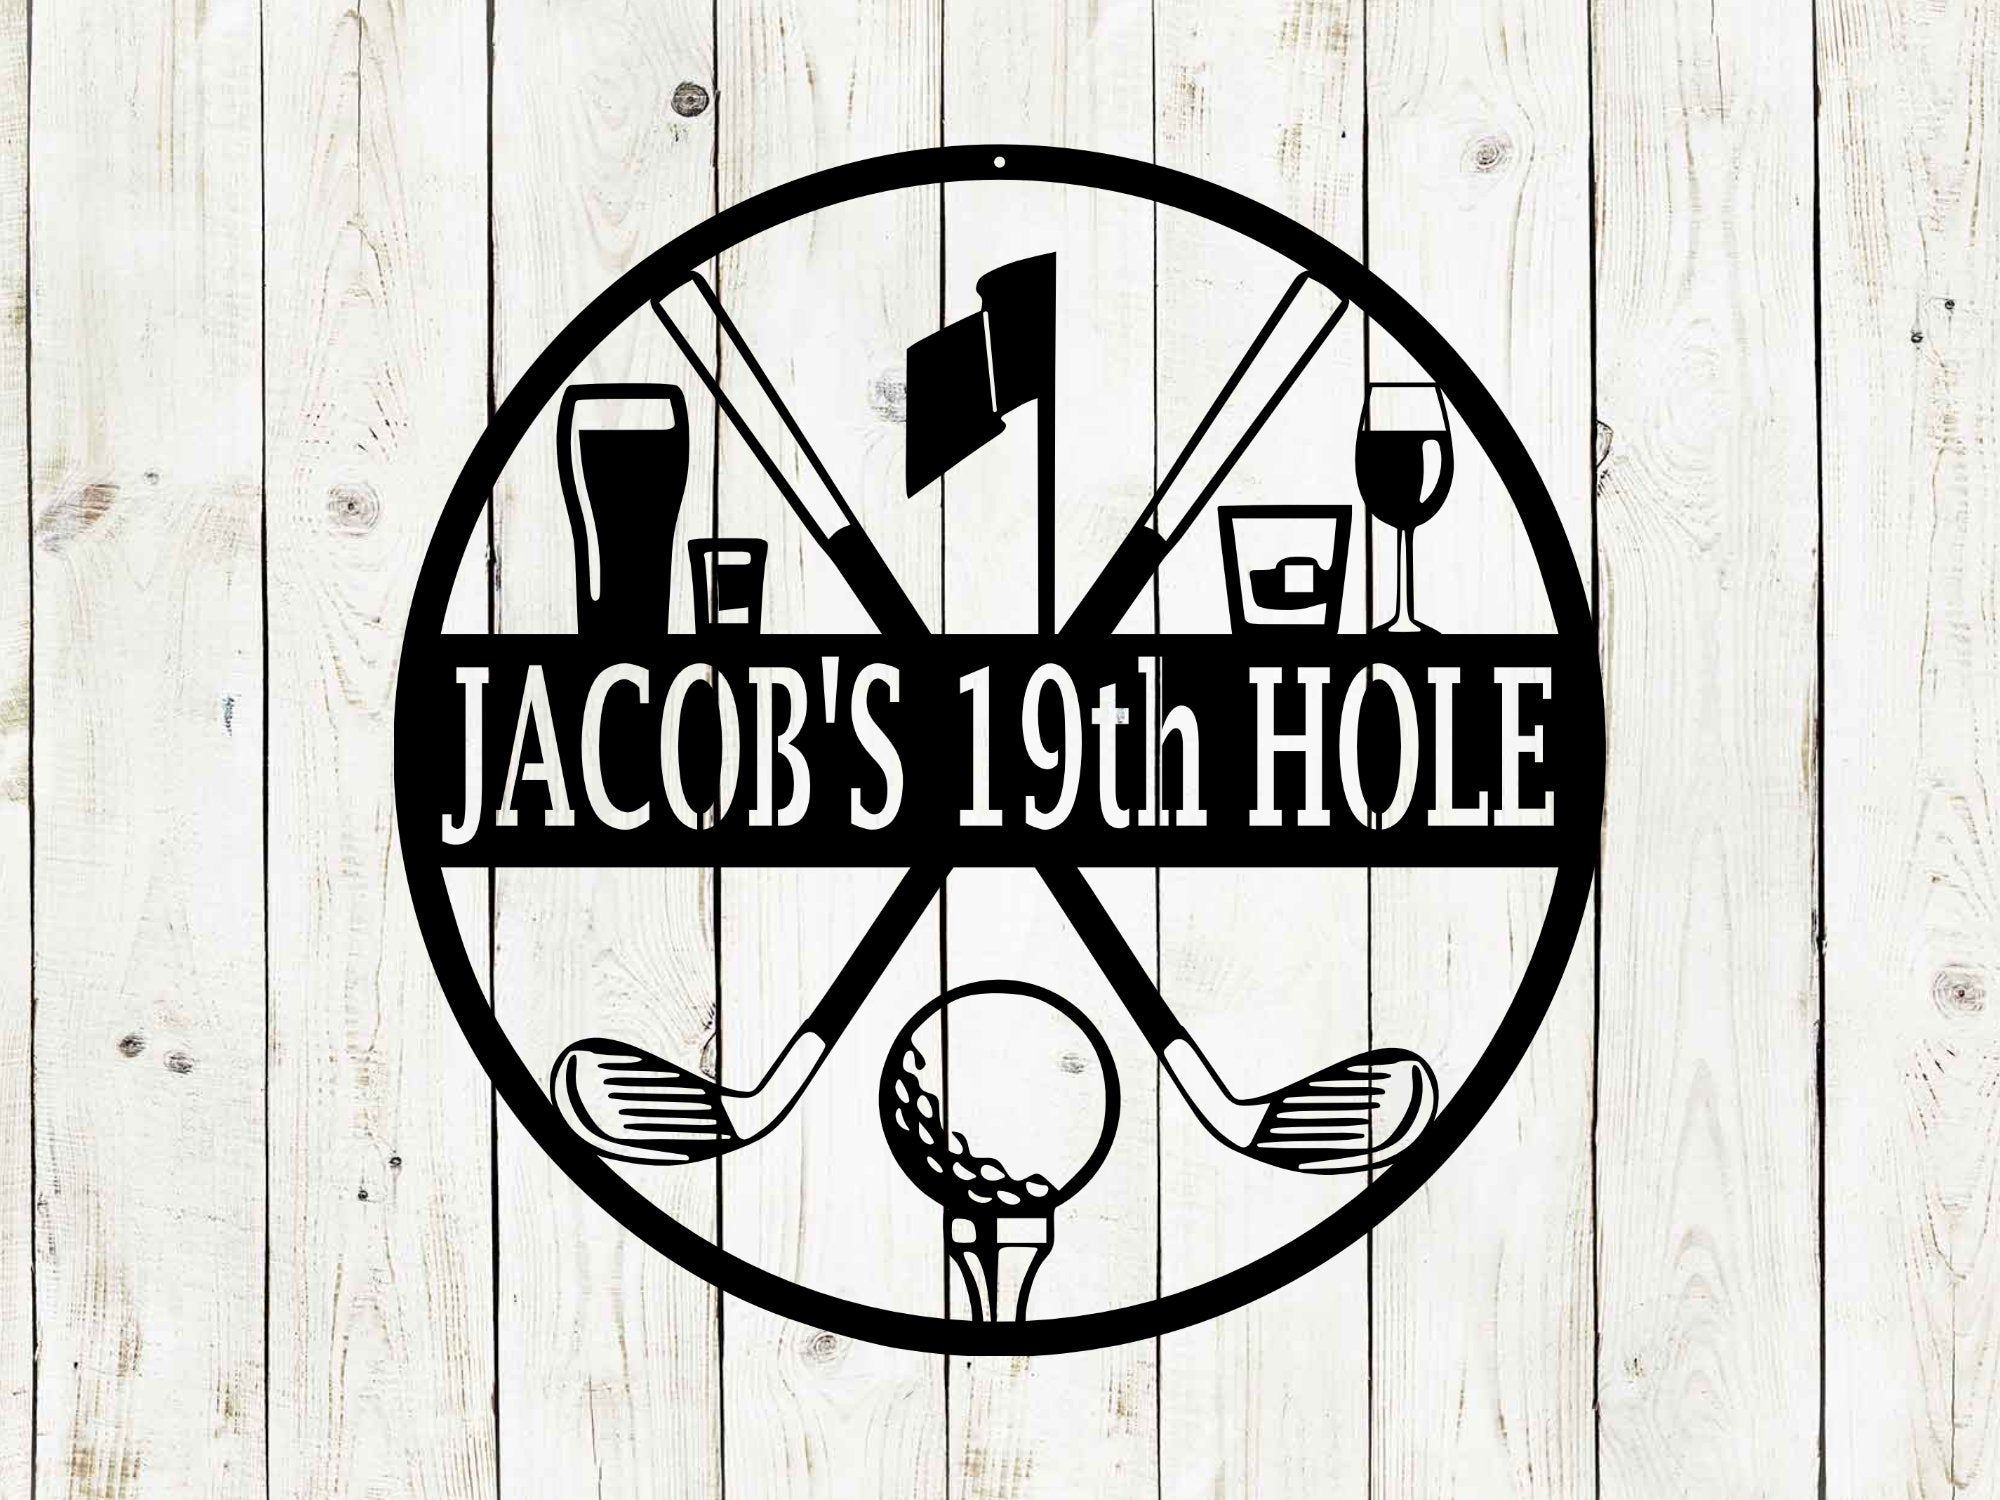 Golf 19th Hole Custom Name Metal Sign, Golf Sign, Bar Sign, 19th Hole, Custom Golf Sign, Man Cave, Home Bar, Game Room Sign, Fathers Day,